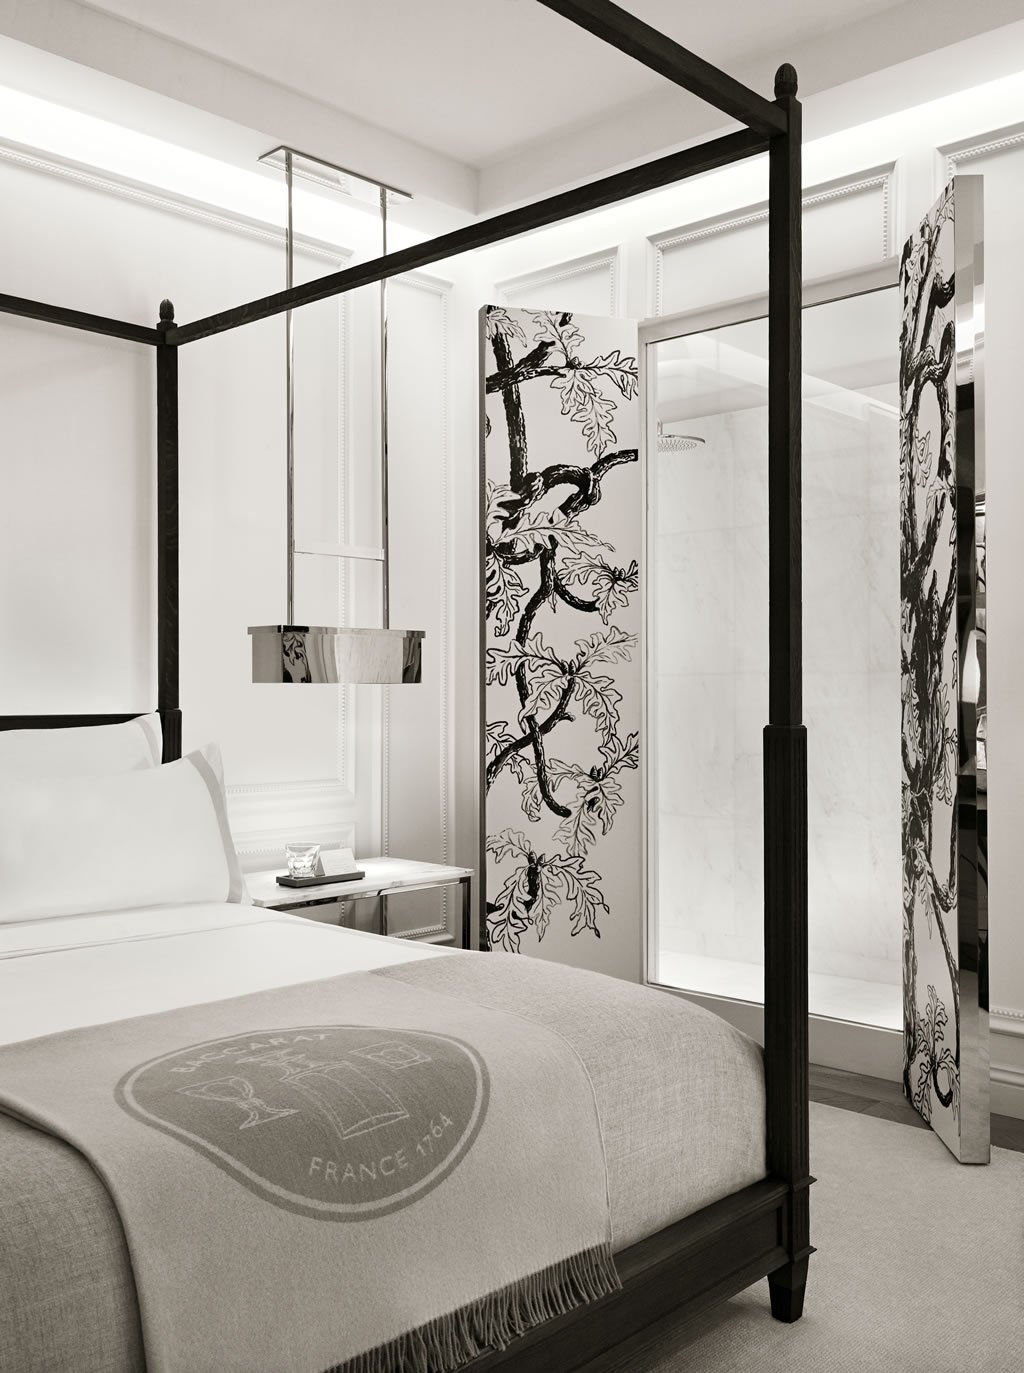 Suite Of The Week The Delightful Prestige Suite At The Baccarat Hotel And Residences